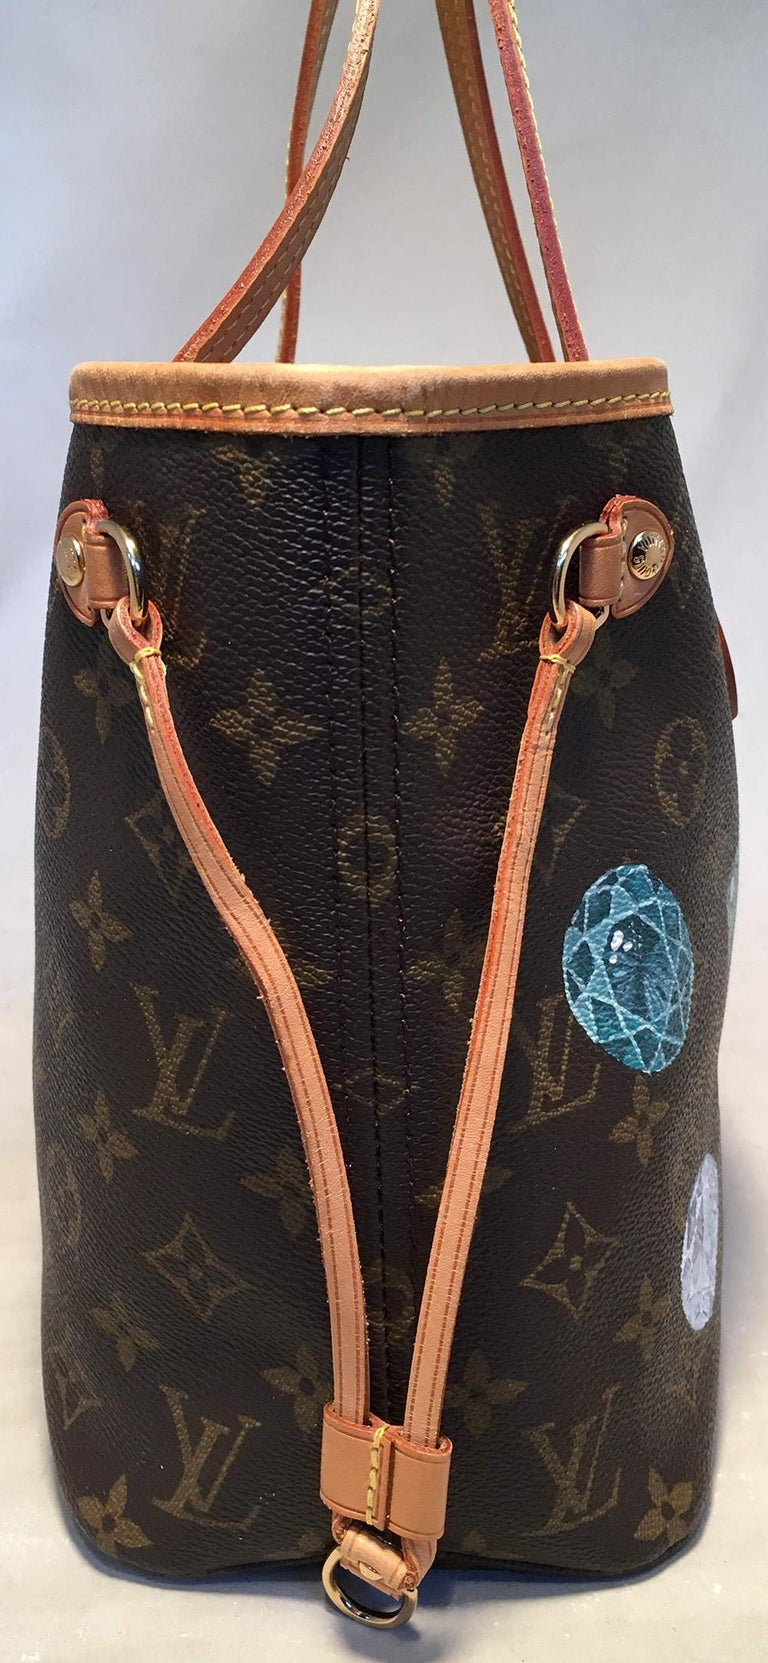 Louis Vuitton Monogram Customized Hand Painted Jewels Neverfull PM Shoulder Bag in excellent condition. Monogram canvas exterior trimmed with tan leather and brass hardware. Customized, hand painted multifaceted gemstone jewels on exterior painted